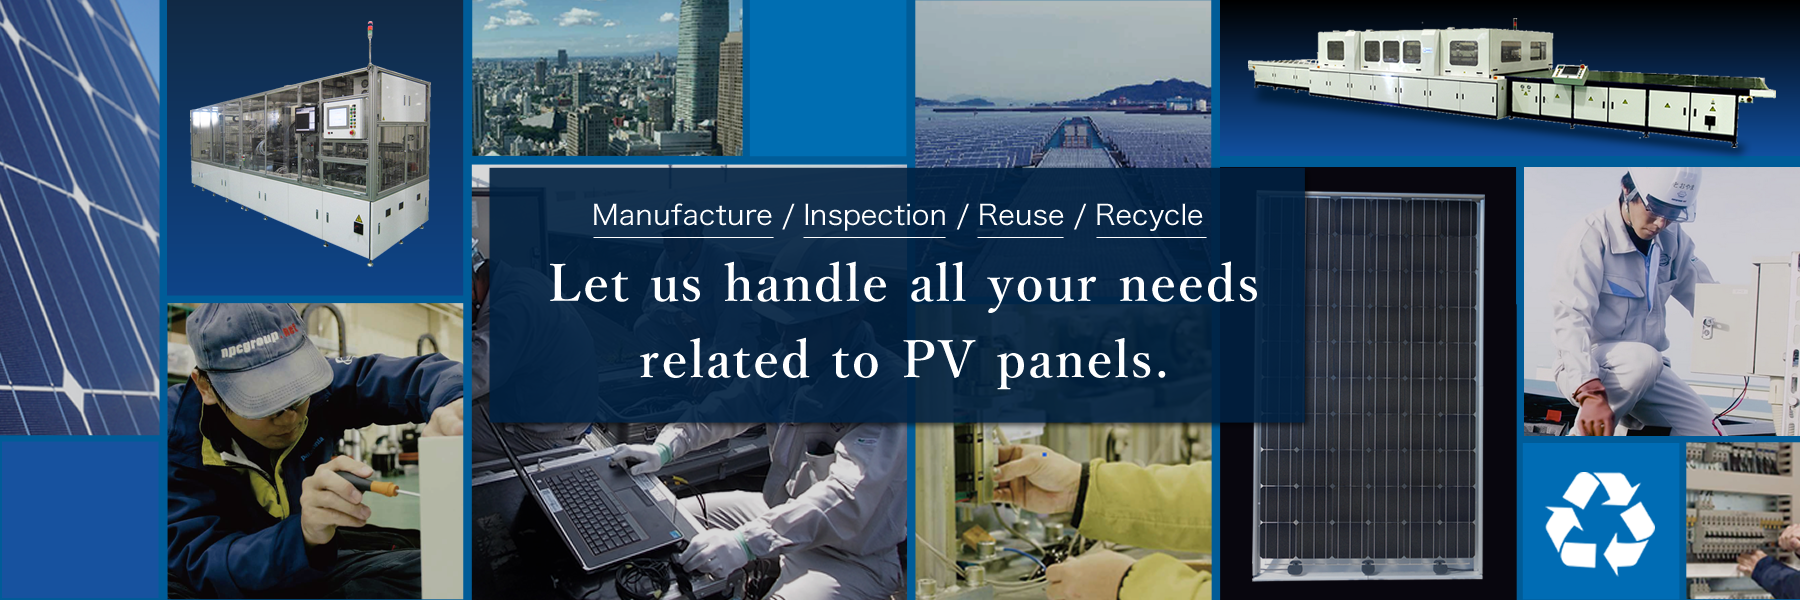 Let us handle all your needs related to PV panels. Manufacture/Inspection/Reuse/Recycle